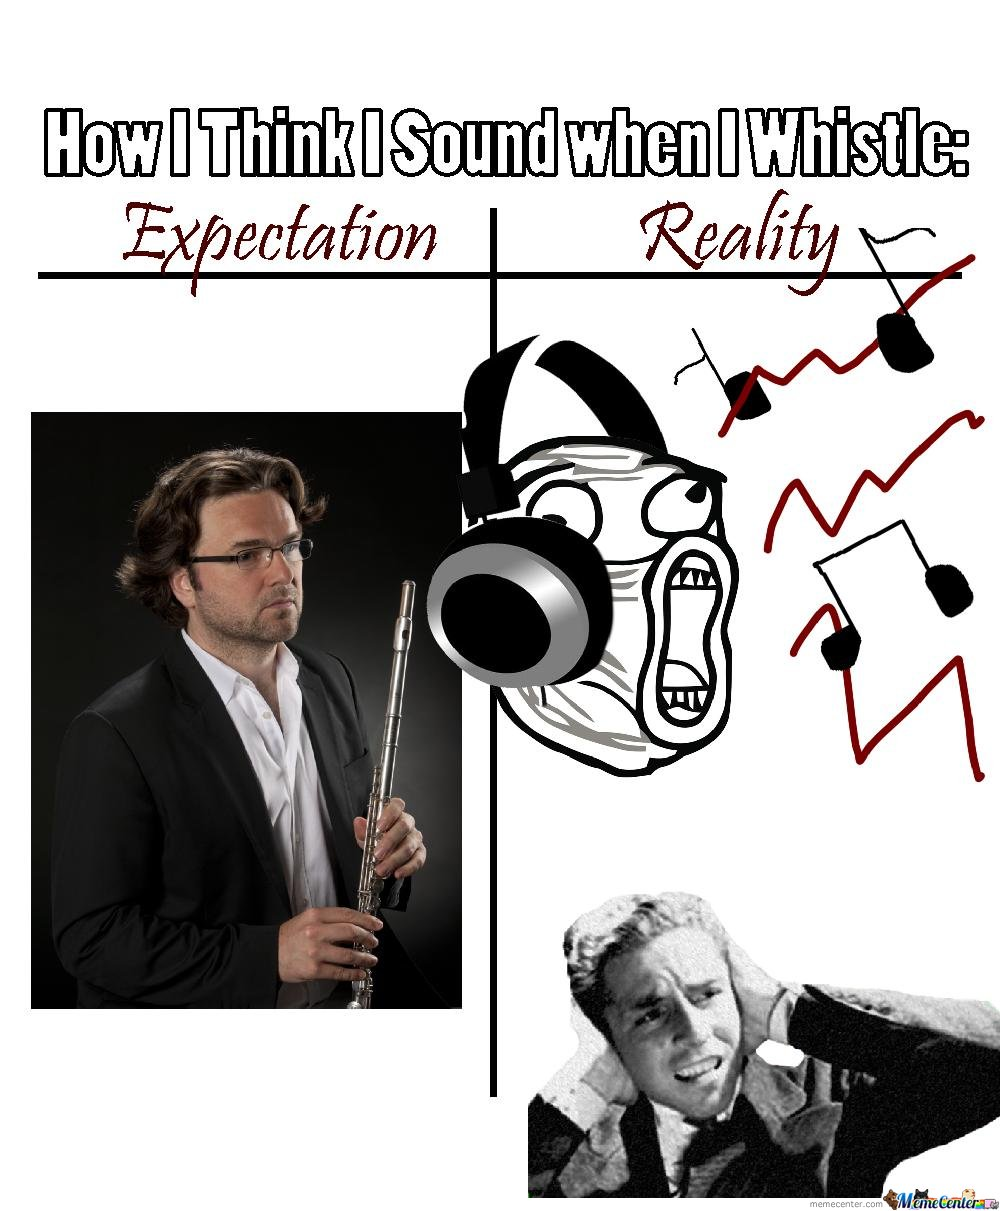 How I think i sound like when i whistle